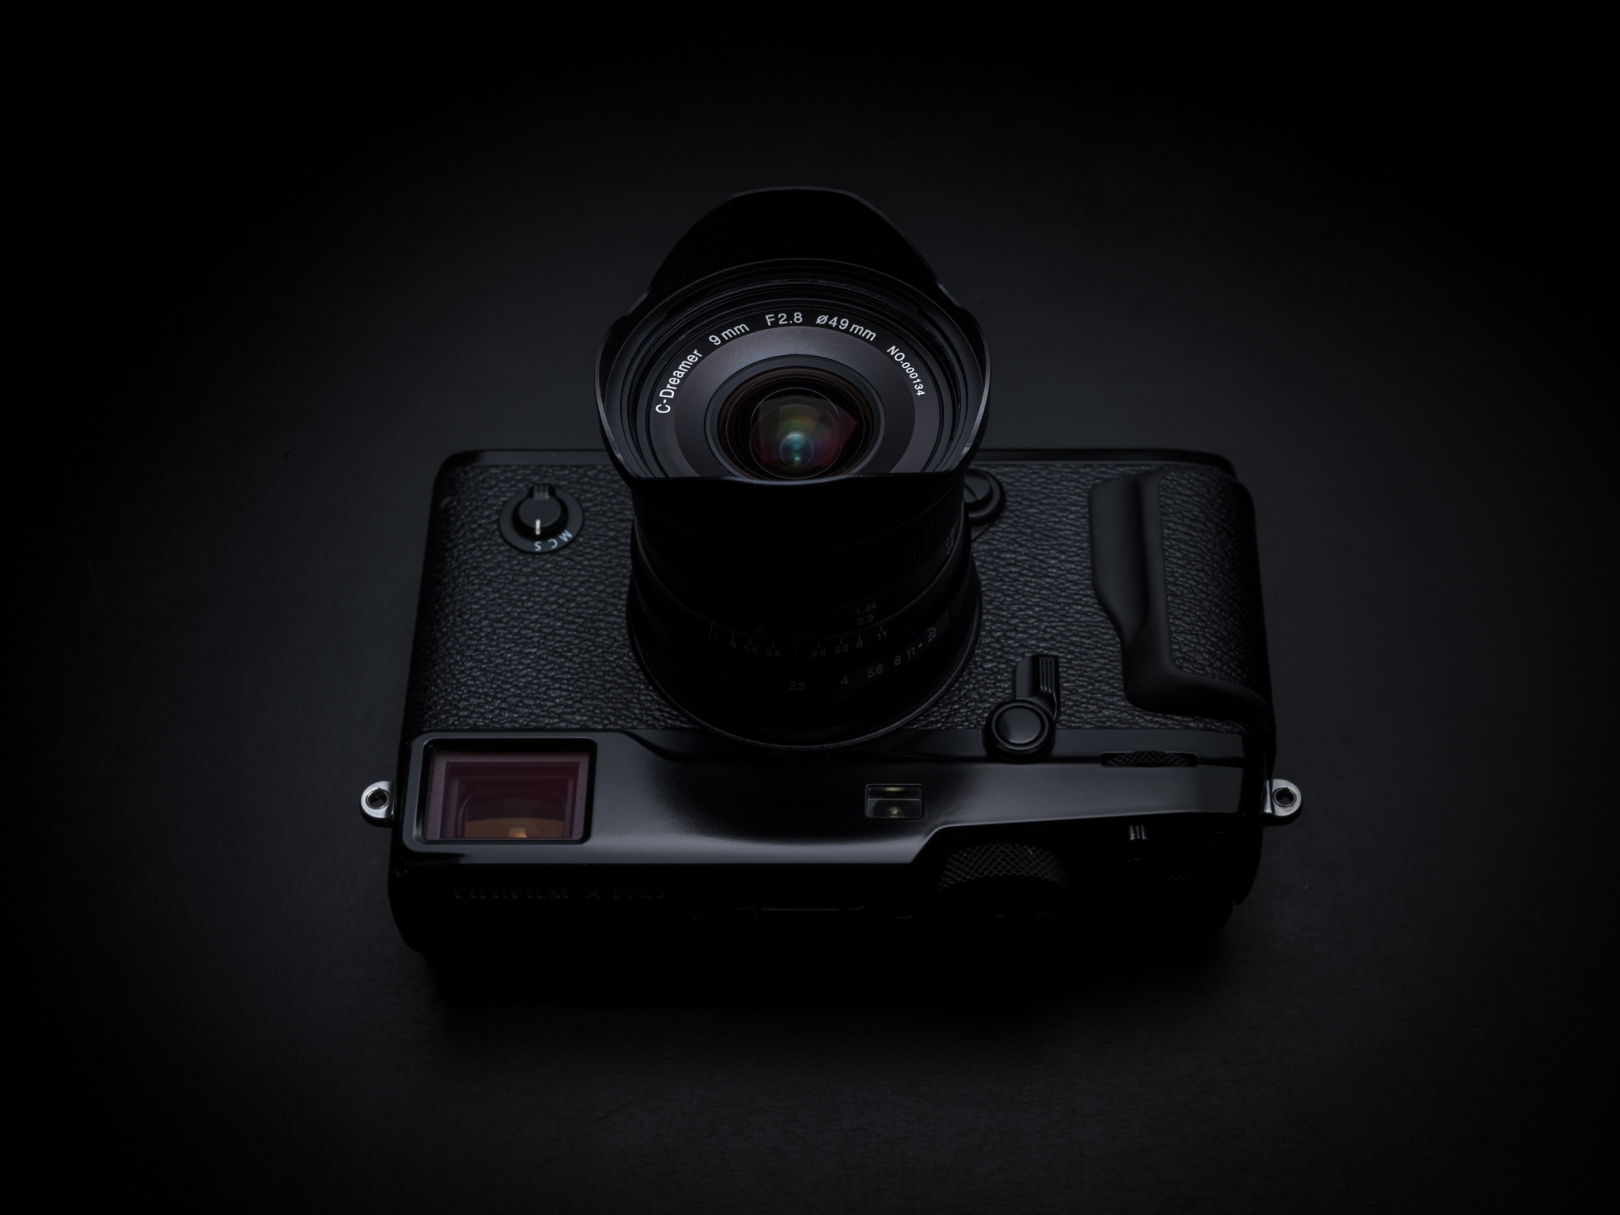 Going Extrawide The Laowa 9mm F 28 Review Jonasrask Photography 7artisans 12mm For Fuji Black